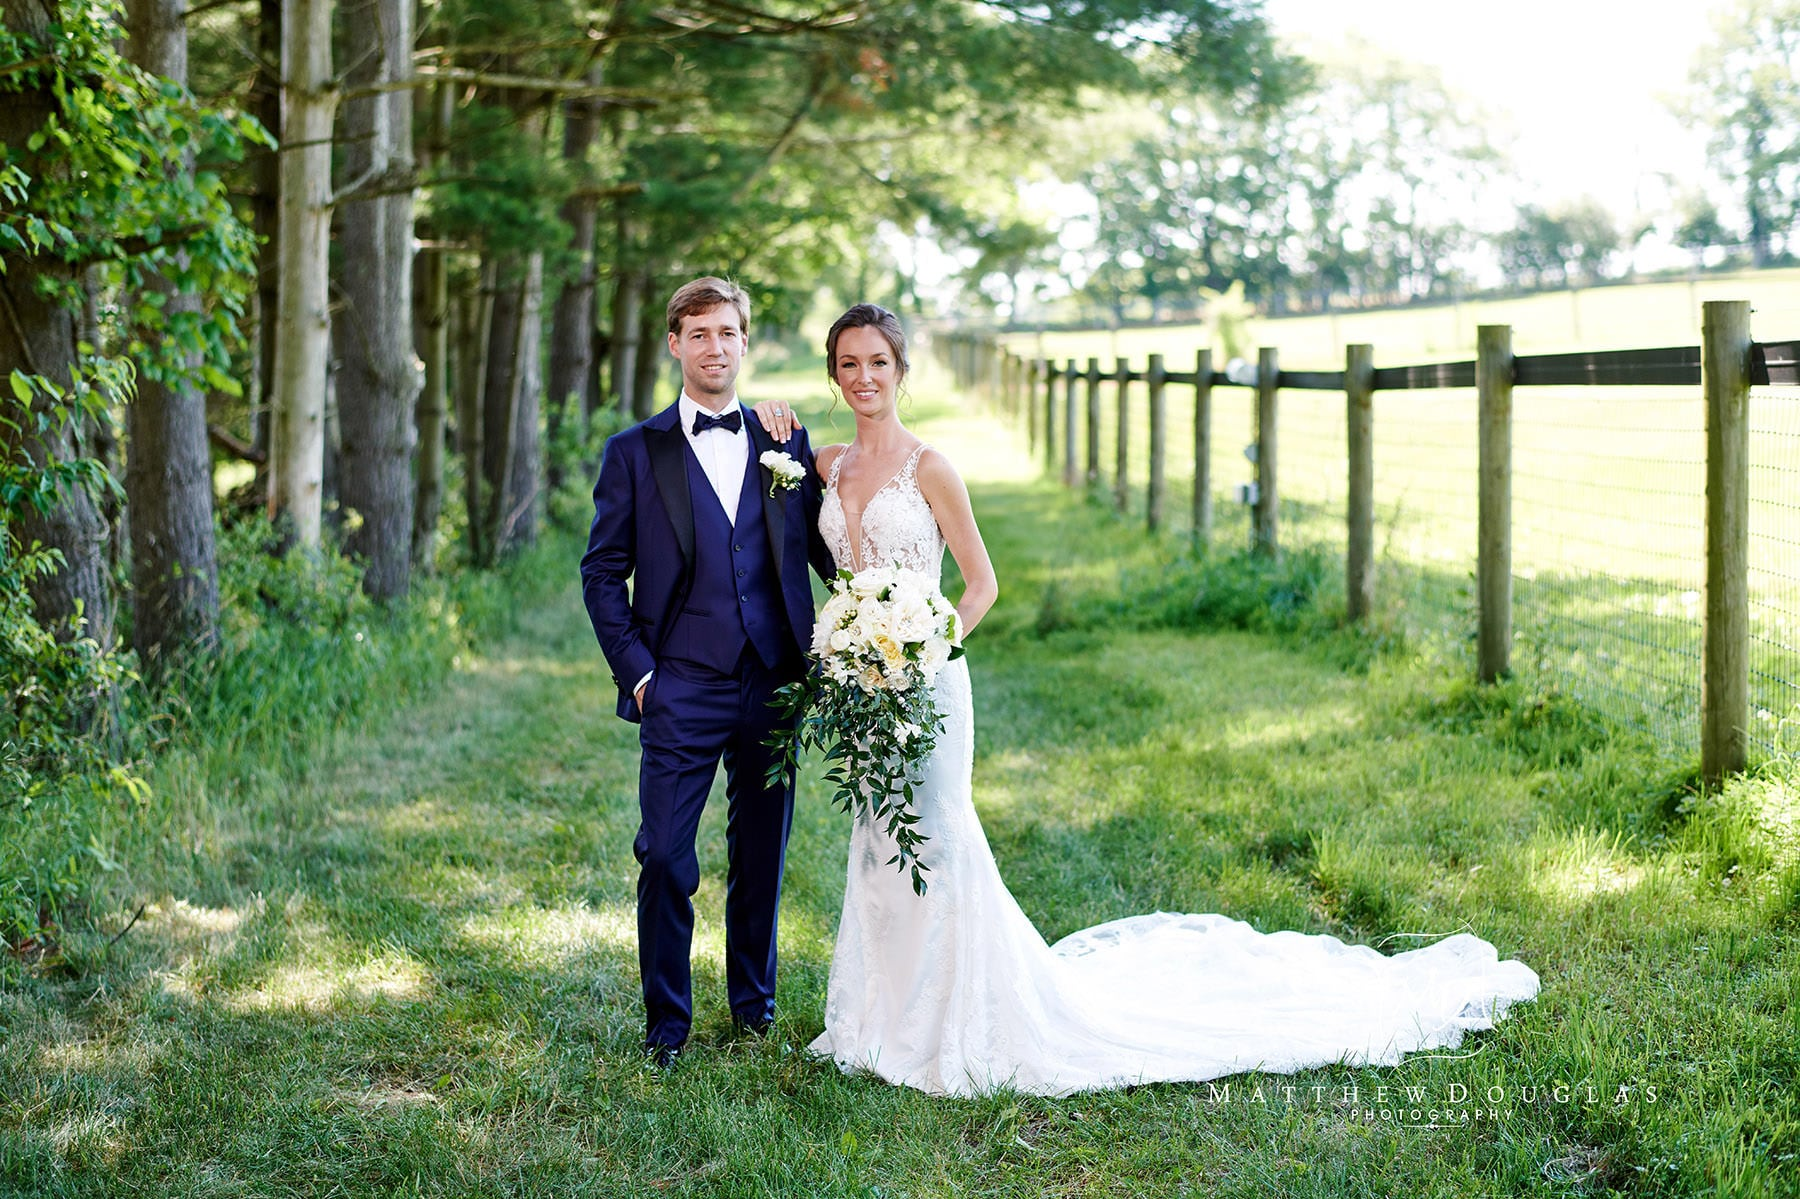 gorgeous bride and groom photo